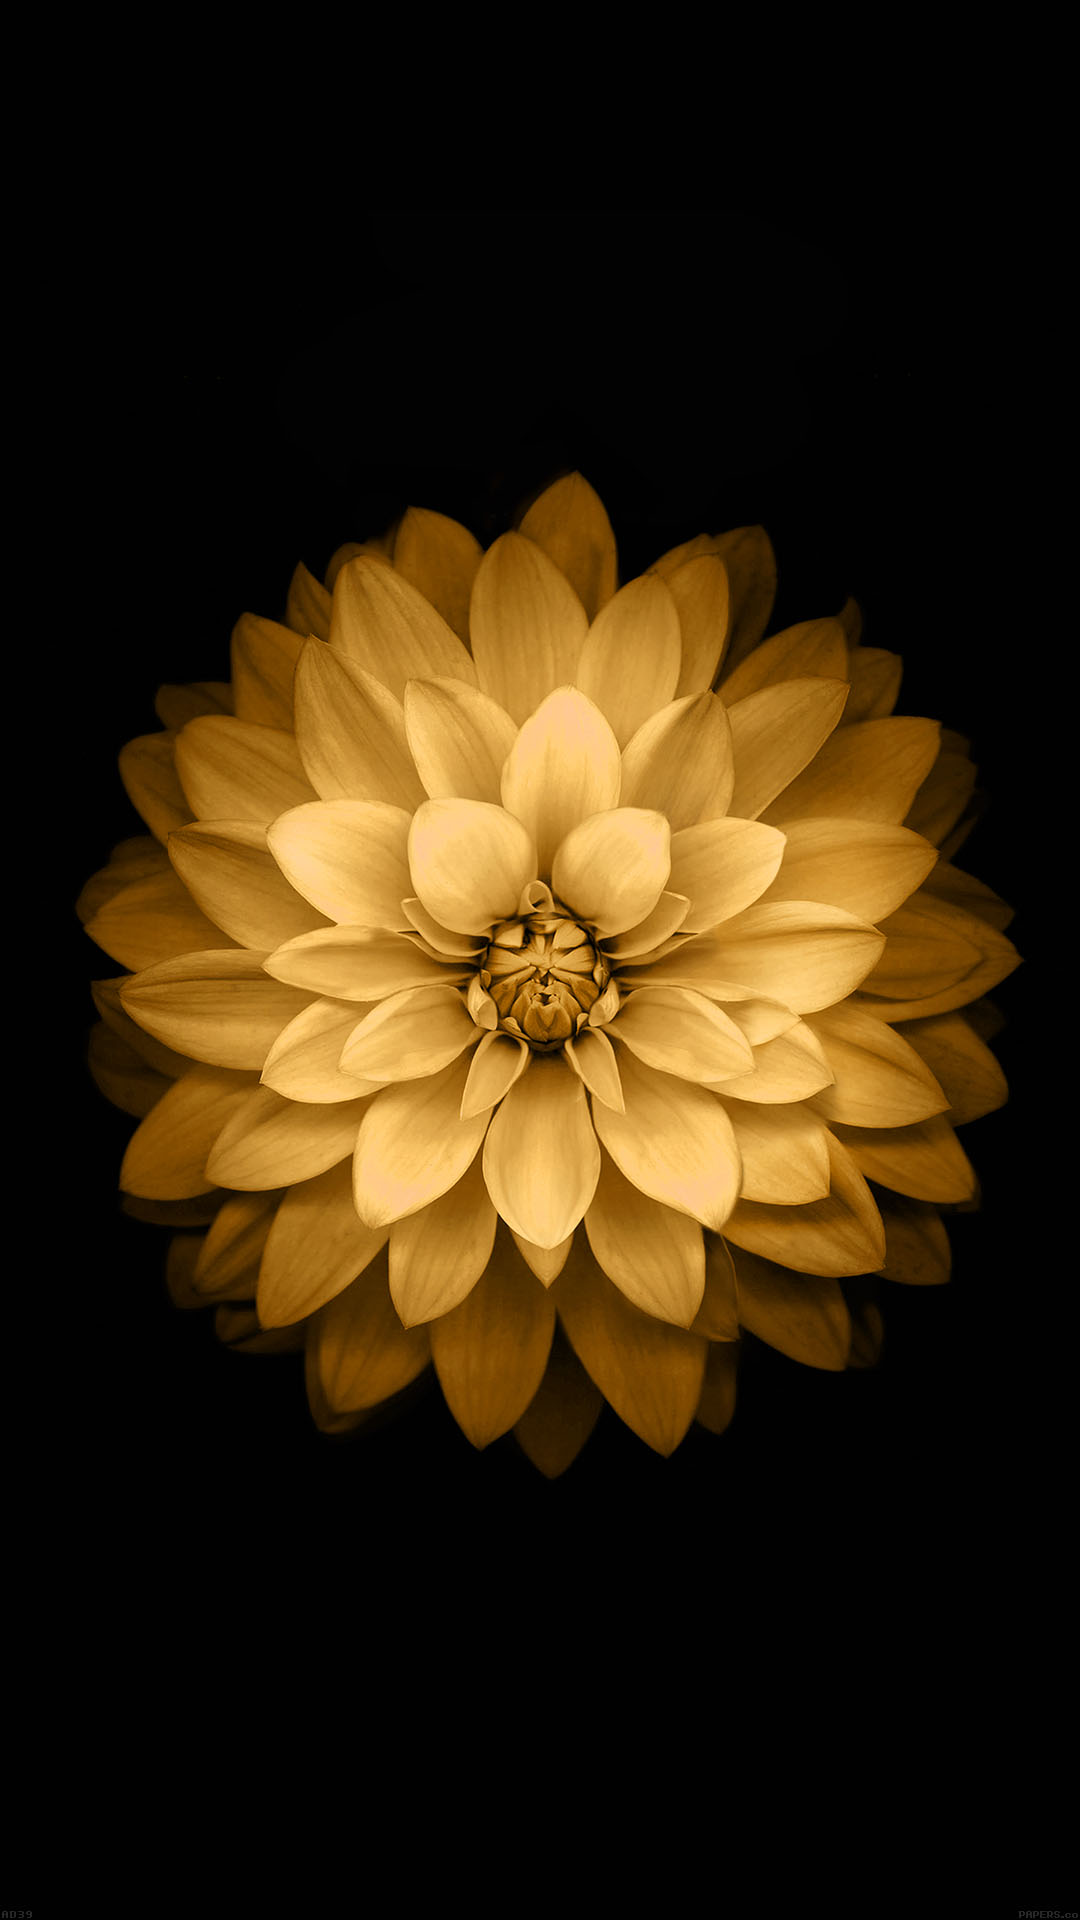 Iphone7papers Ad39 Apple Yellow Lotus Iphone6 Plus Ios8 Flower